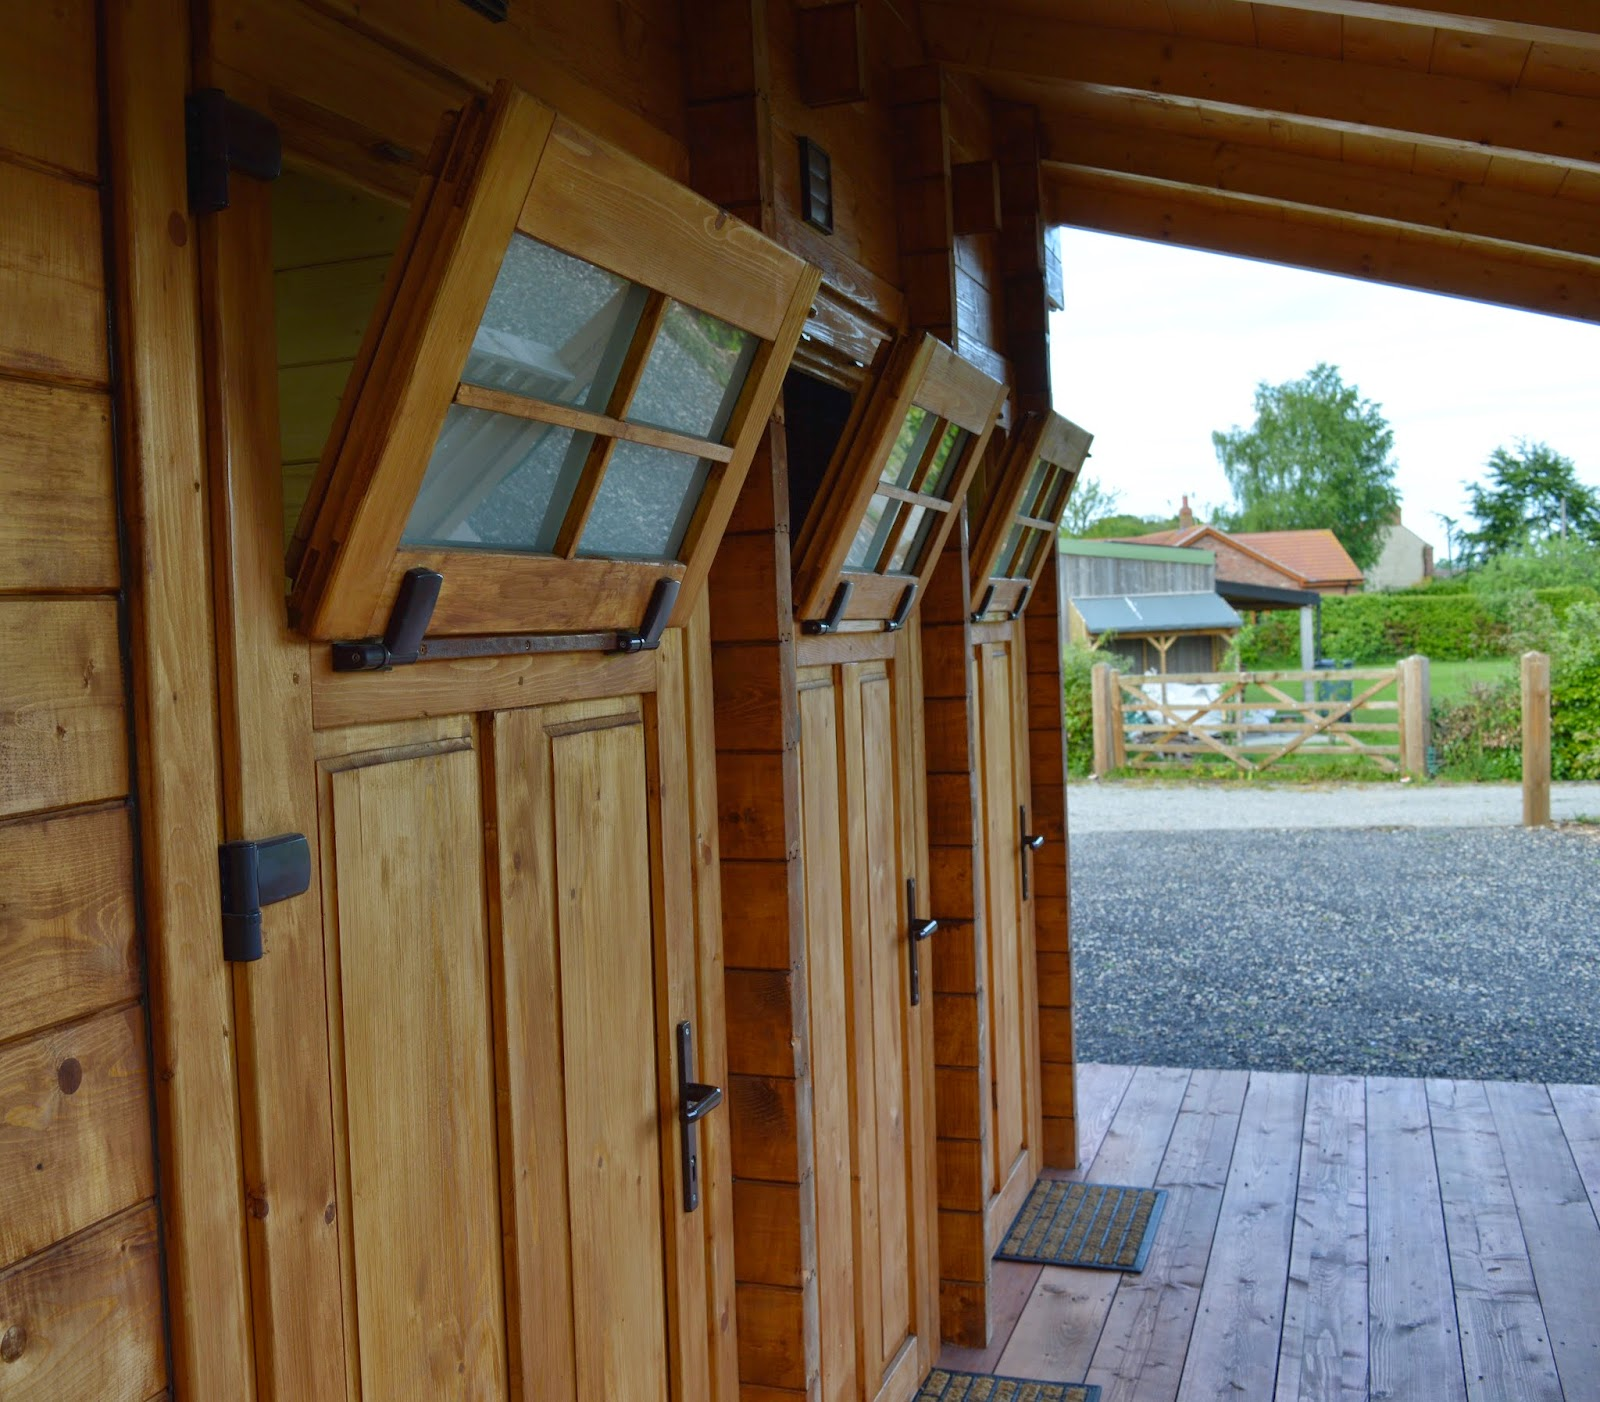 Acorn glade glamping in Yorkshire - showers